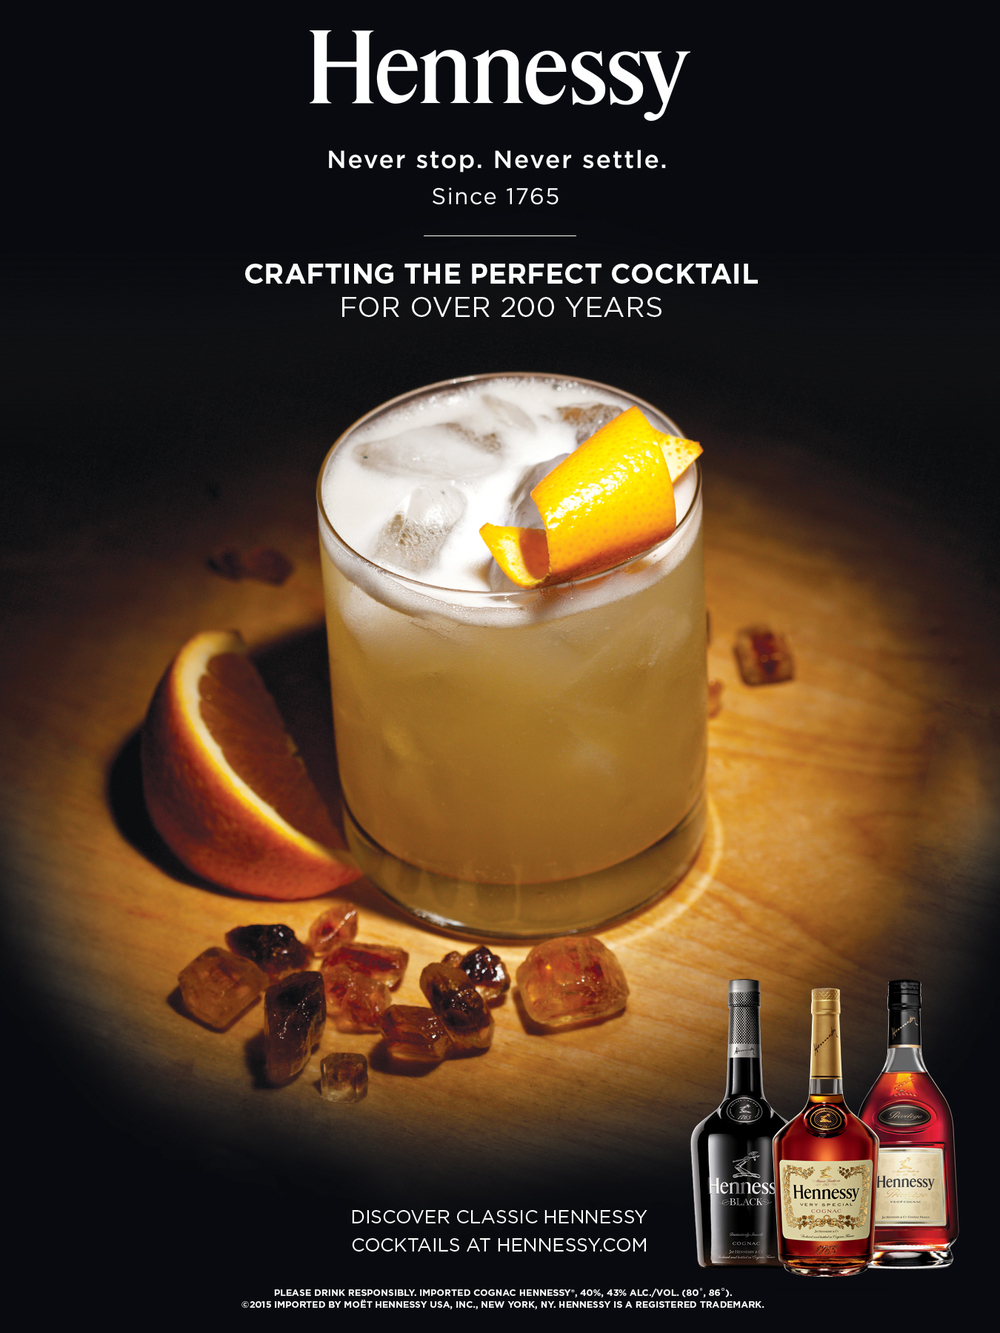 henn_crafting_perfect_cocktail_v2.jpg